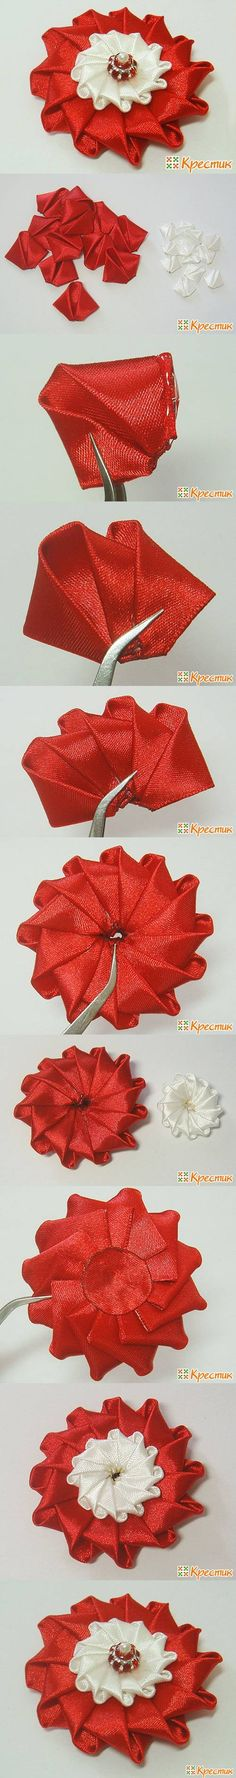 DIY Bright Satin Ribbon Flower